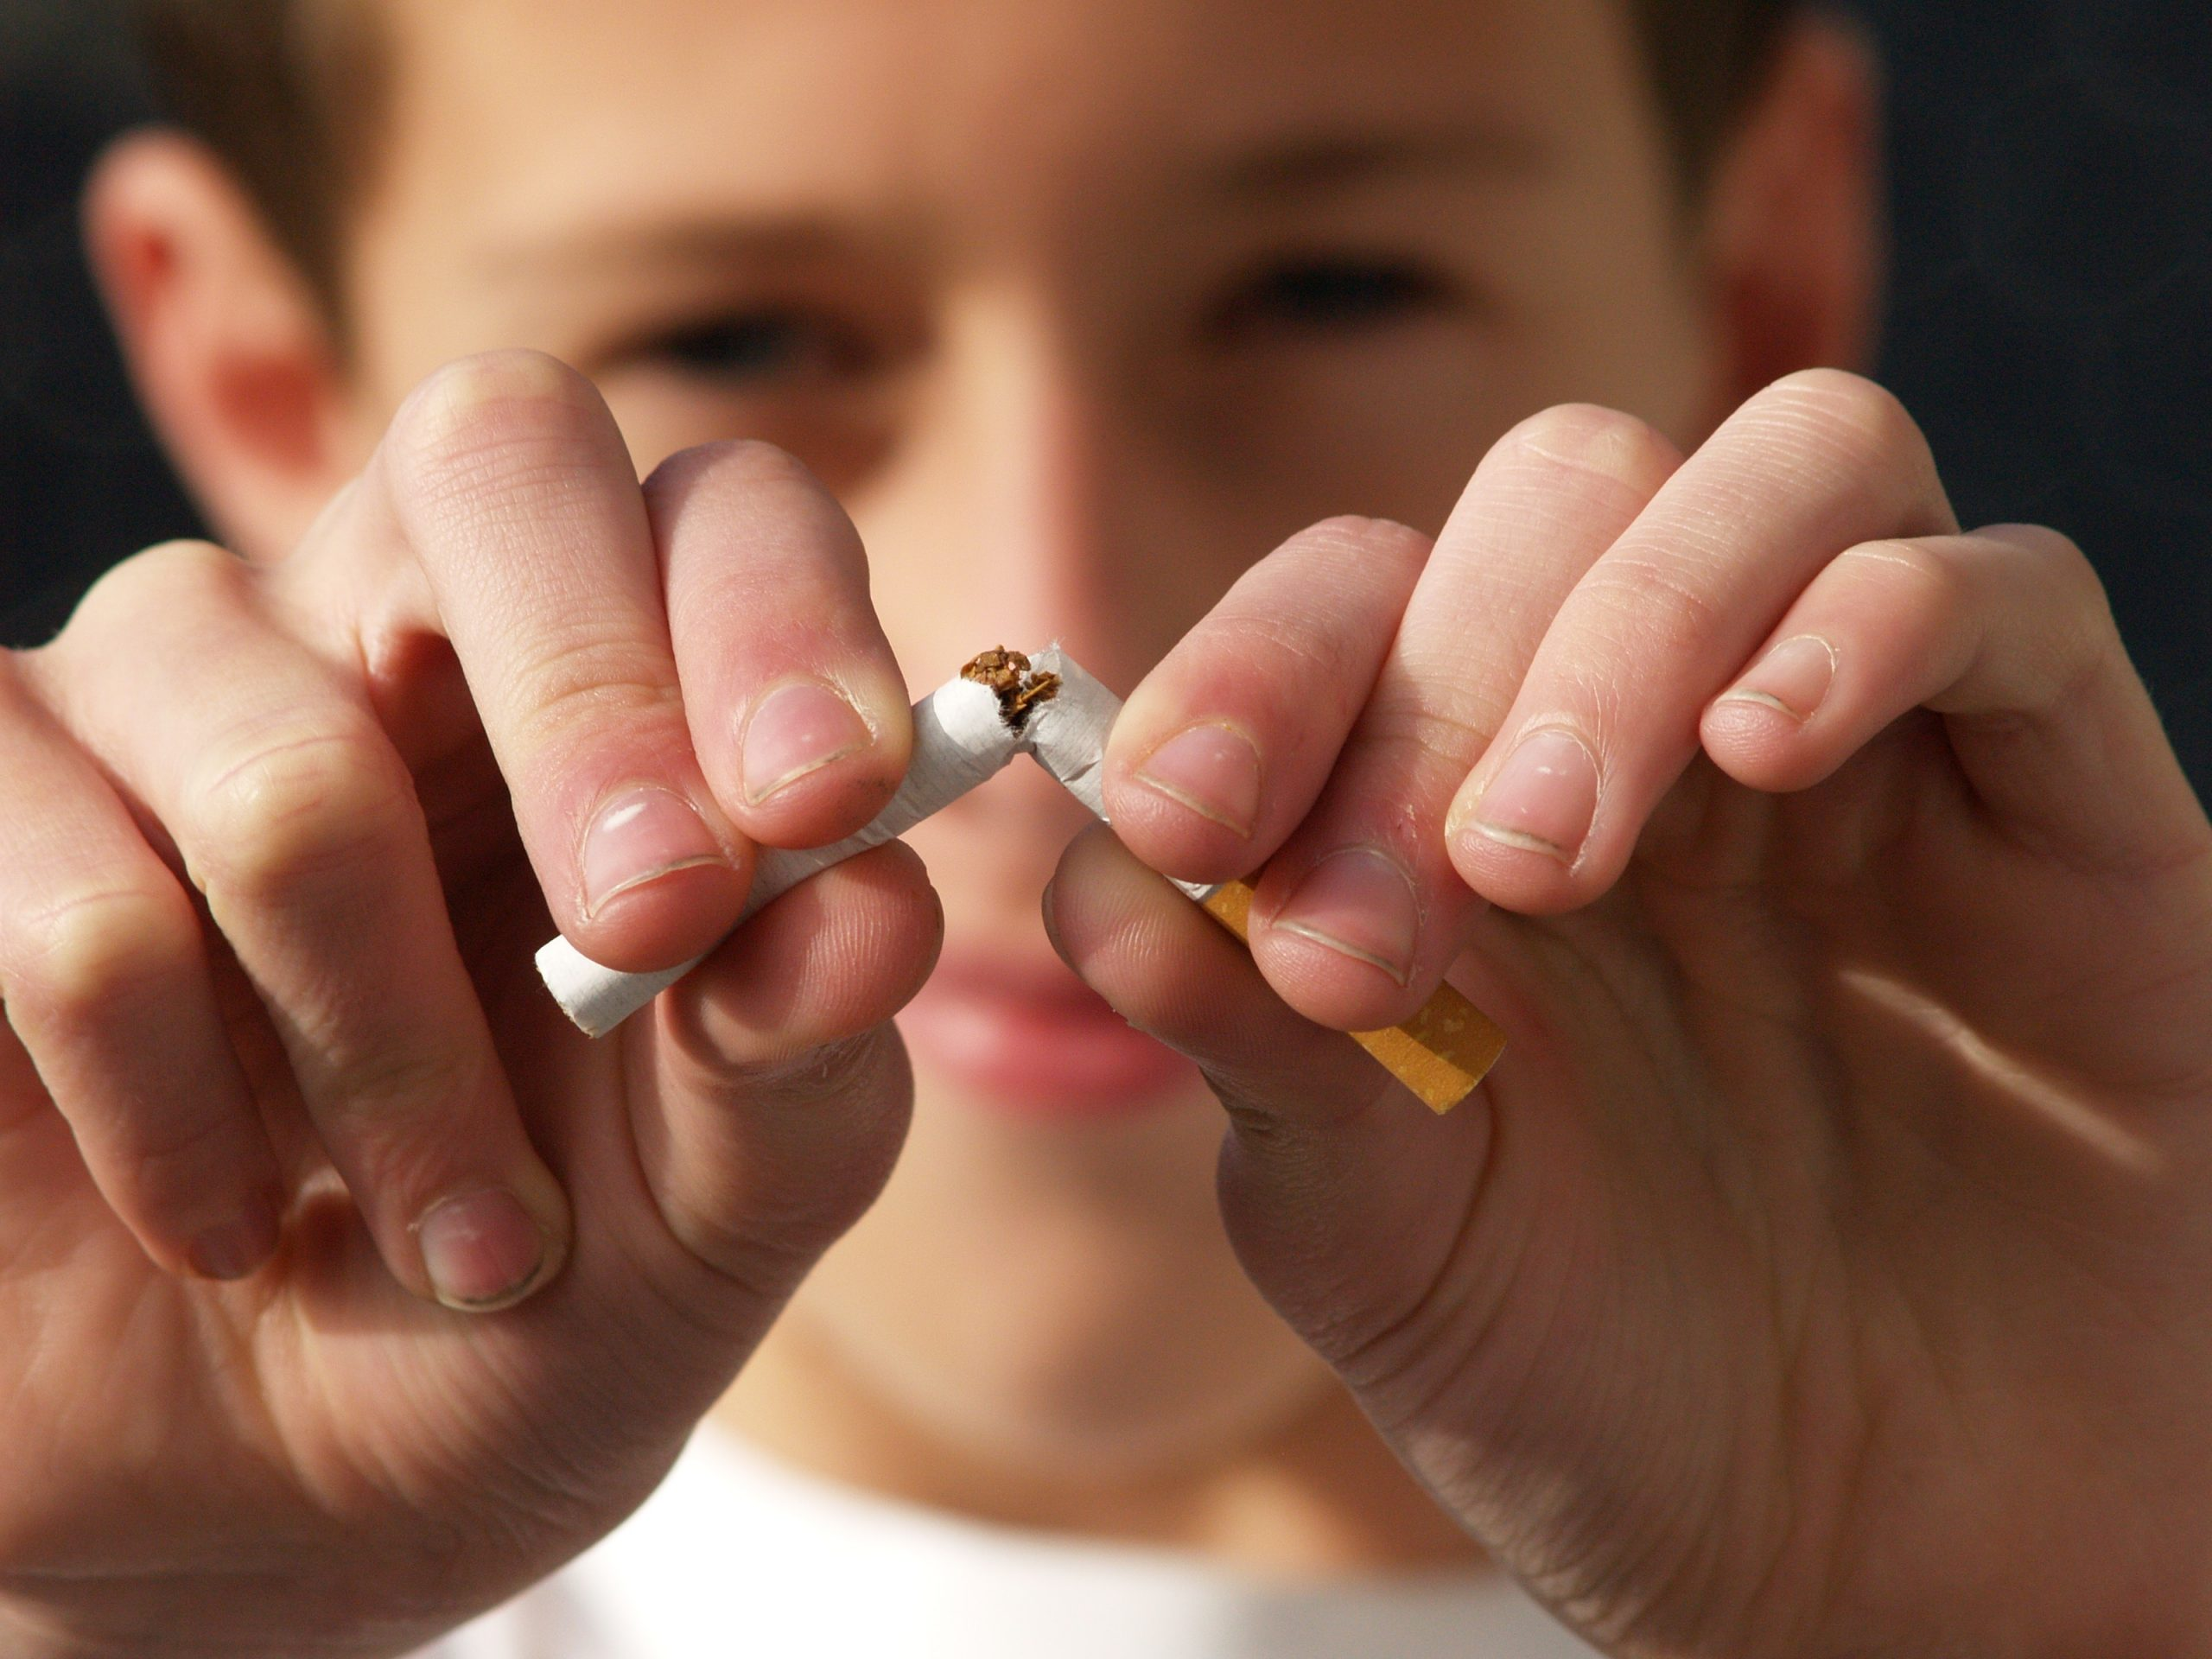 Newnan Dentist | Tobacco & Your Teeth: The Risks of Chewing and Smoking